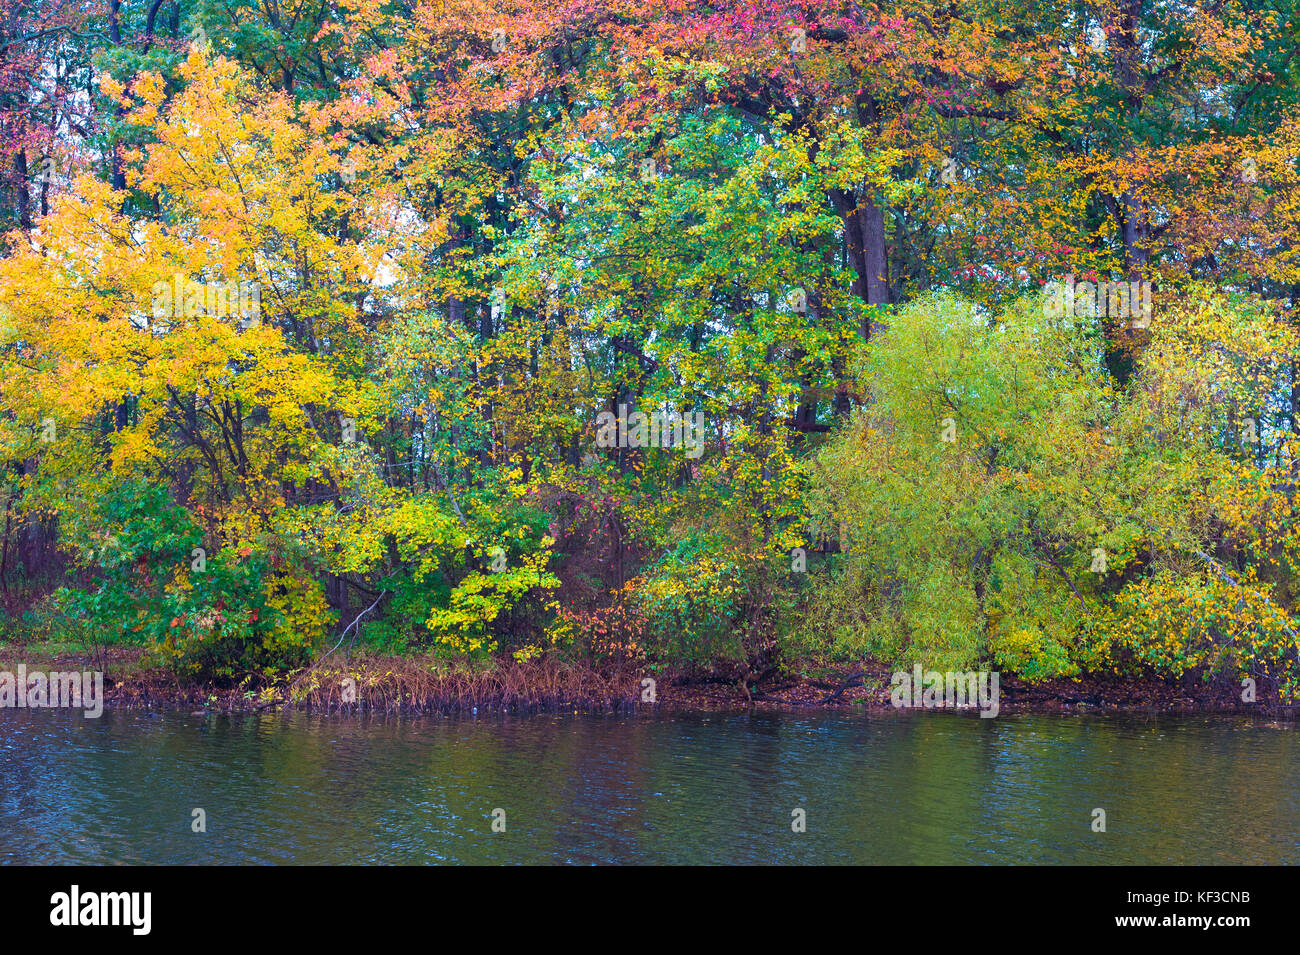 Trees with leaves turning bright, bold colors in Autumn are on the ...